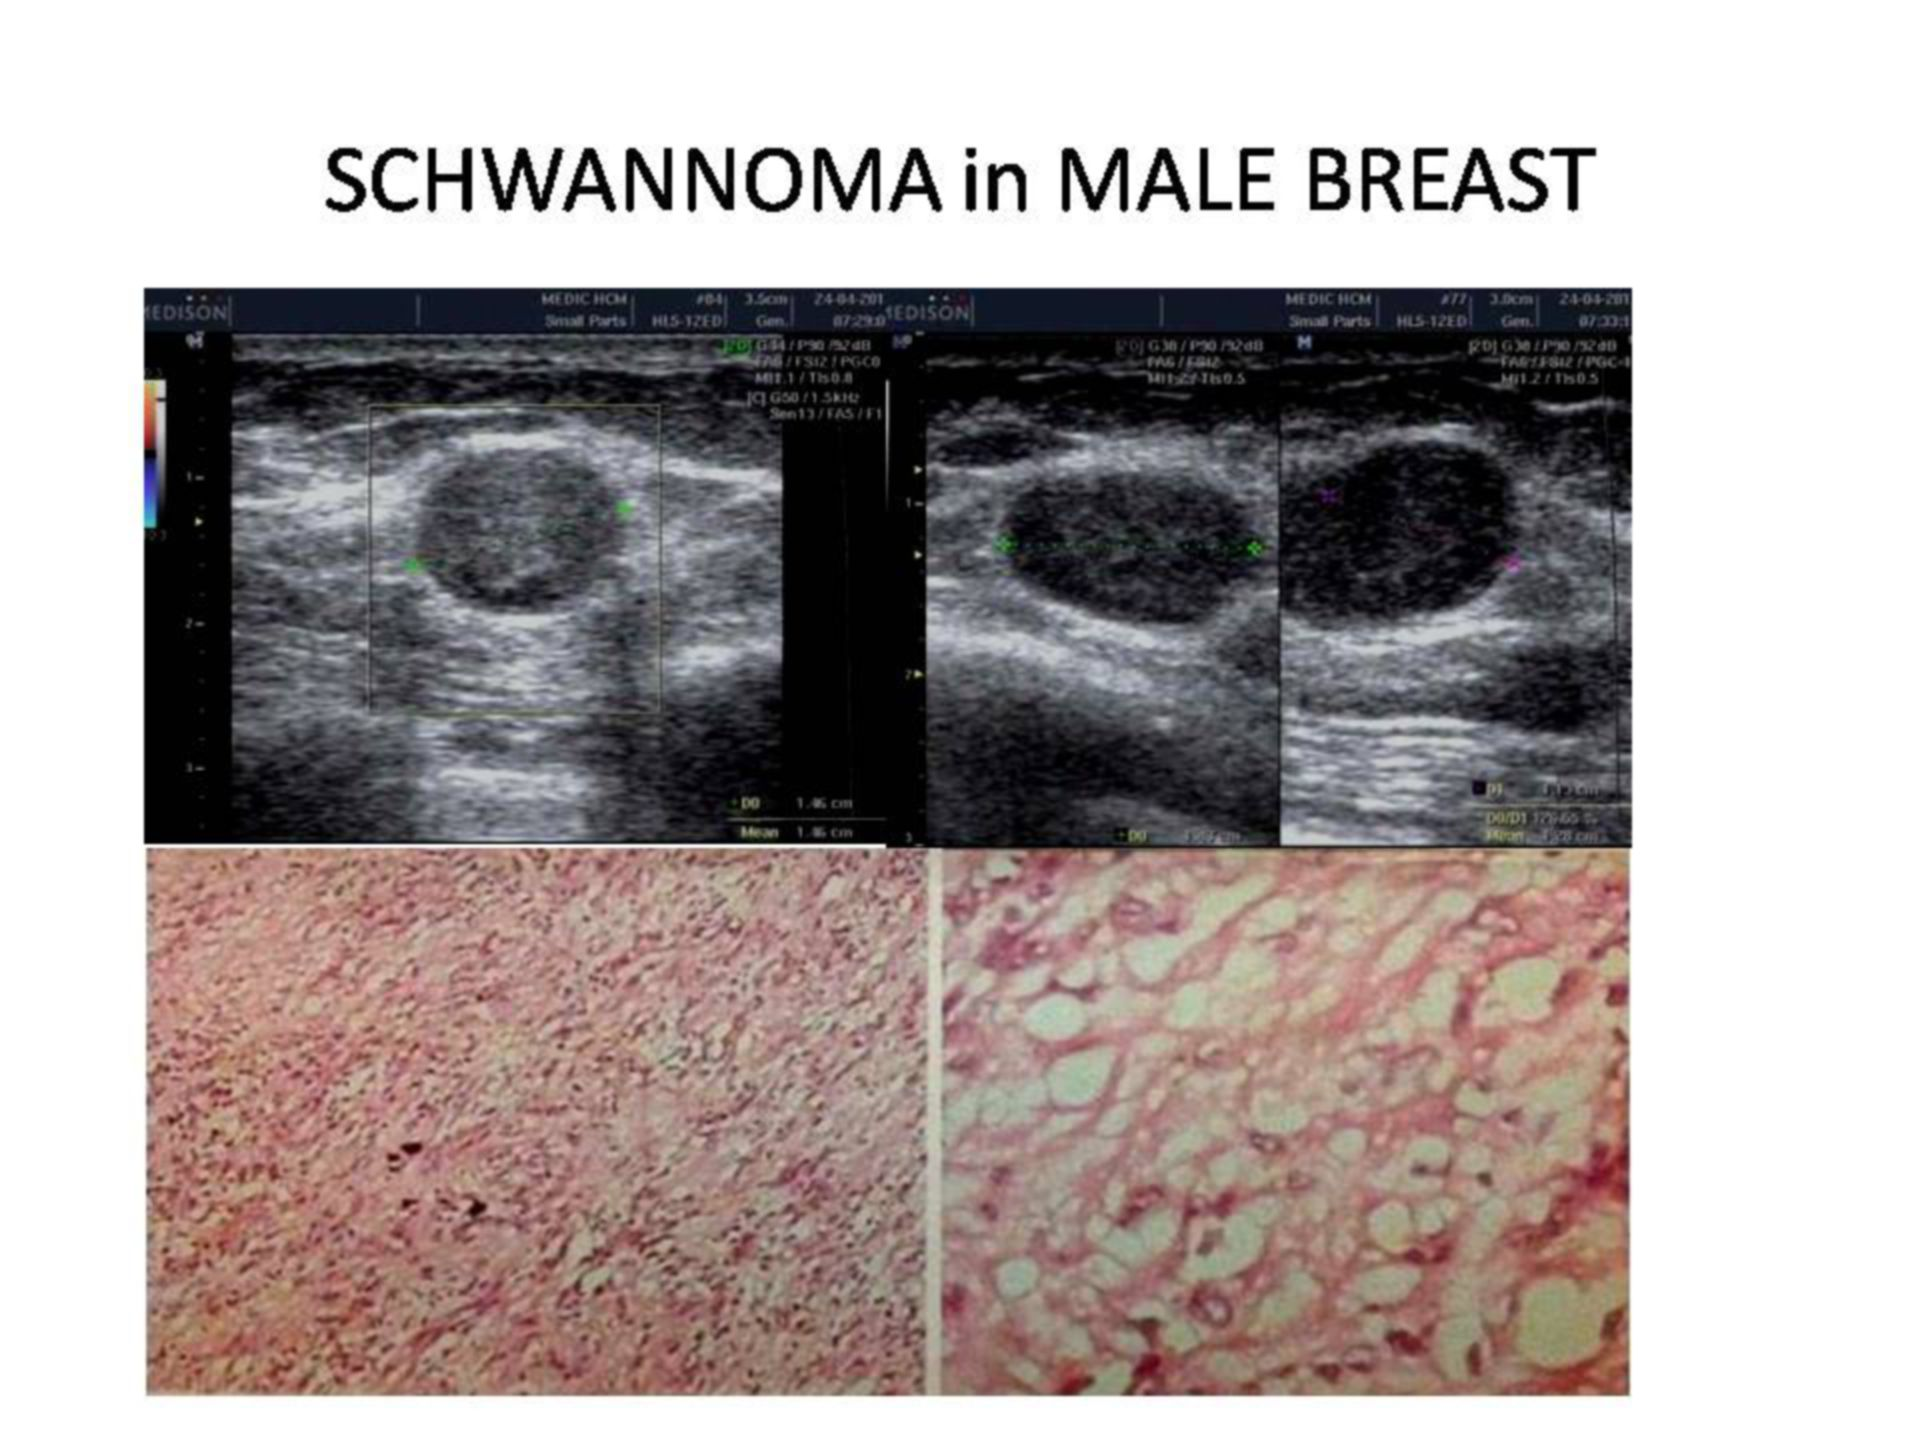 Schwannoma in Male Breast